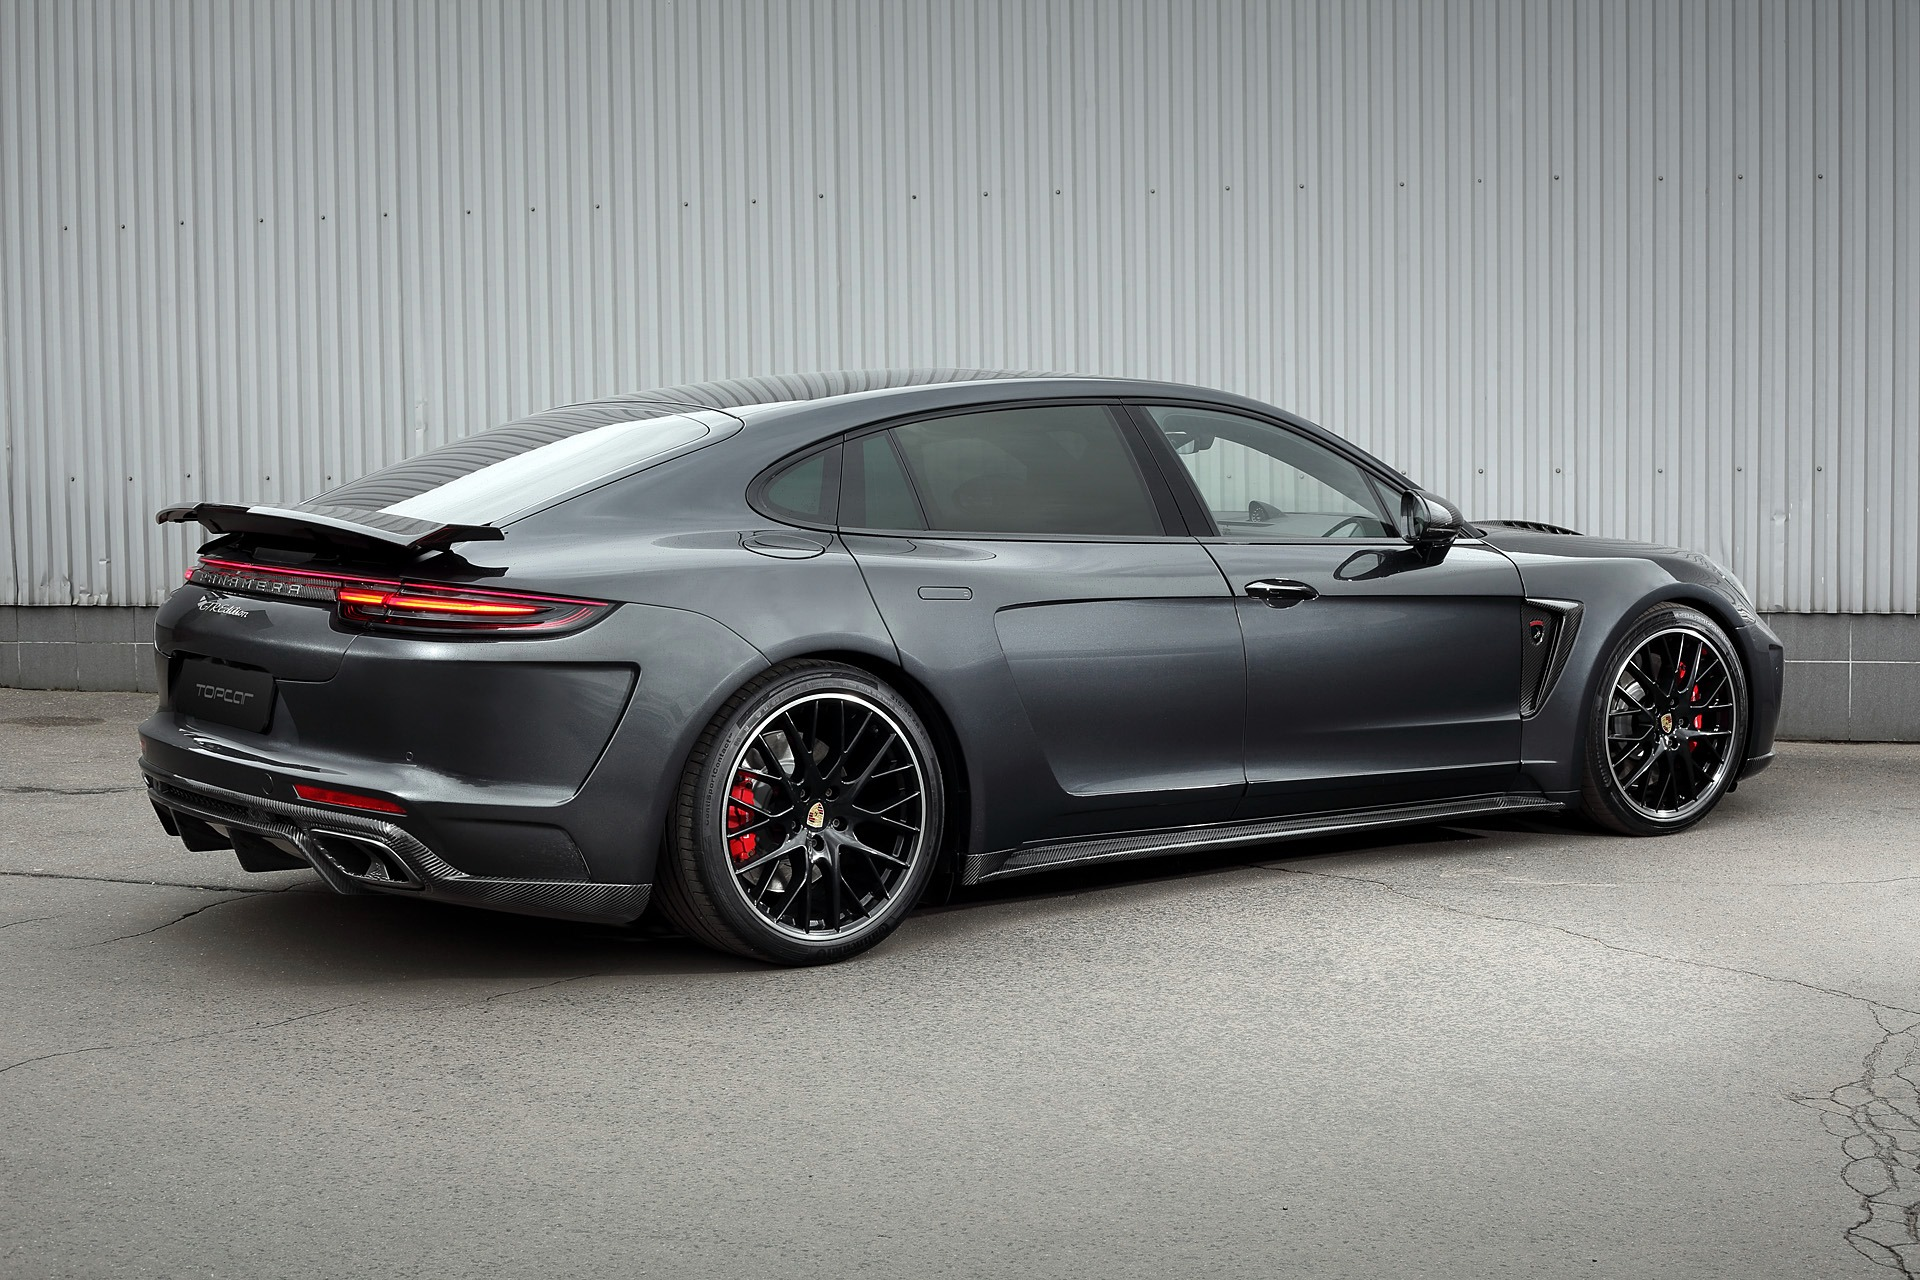 Porsche Panamera Turbo Grey